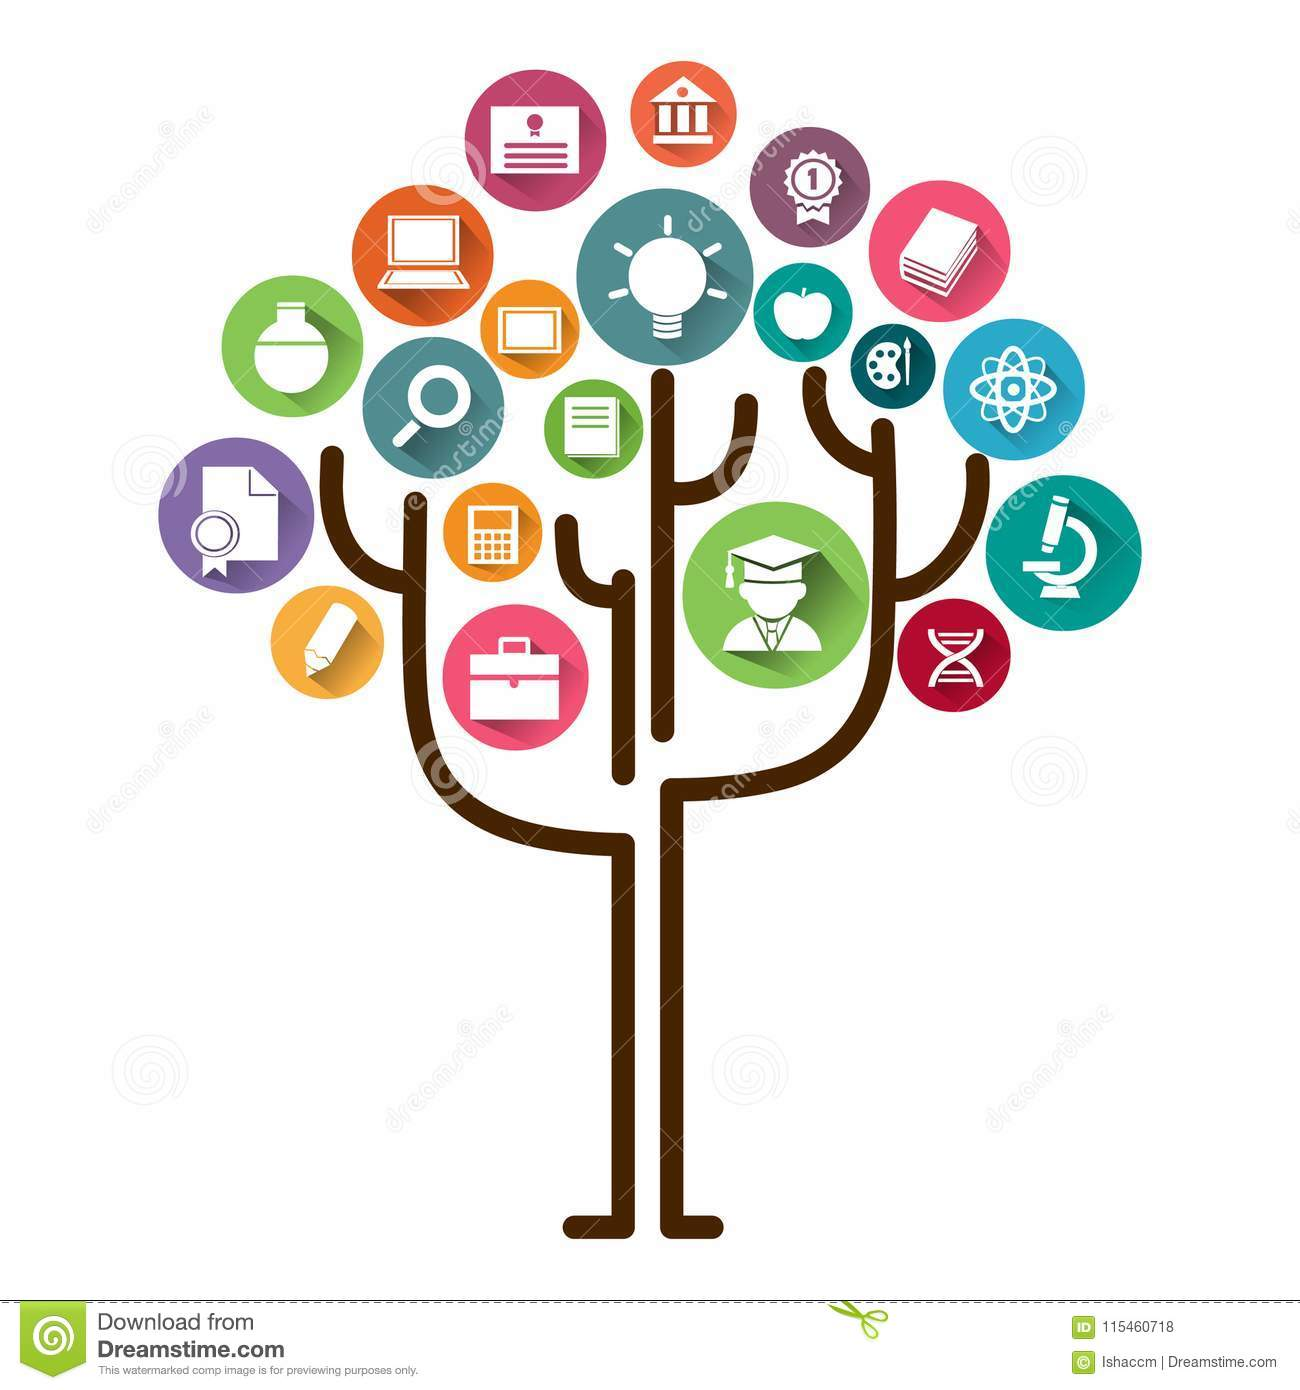 Education tree concept learning.Education icons and tree vector illustration